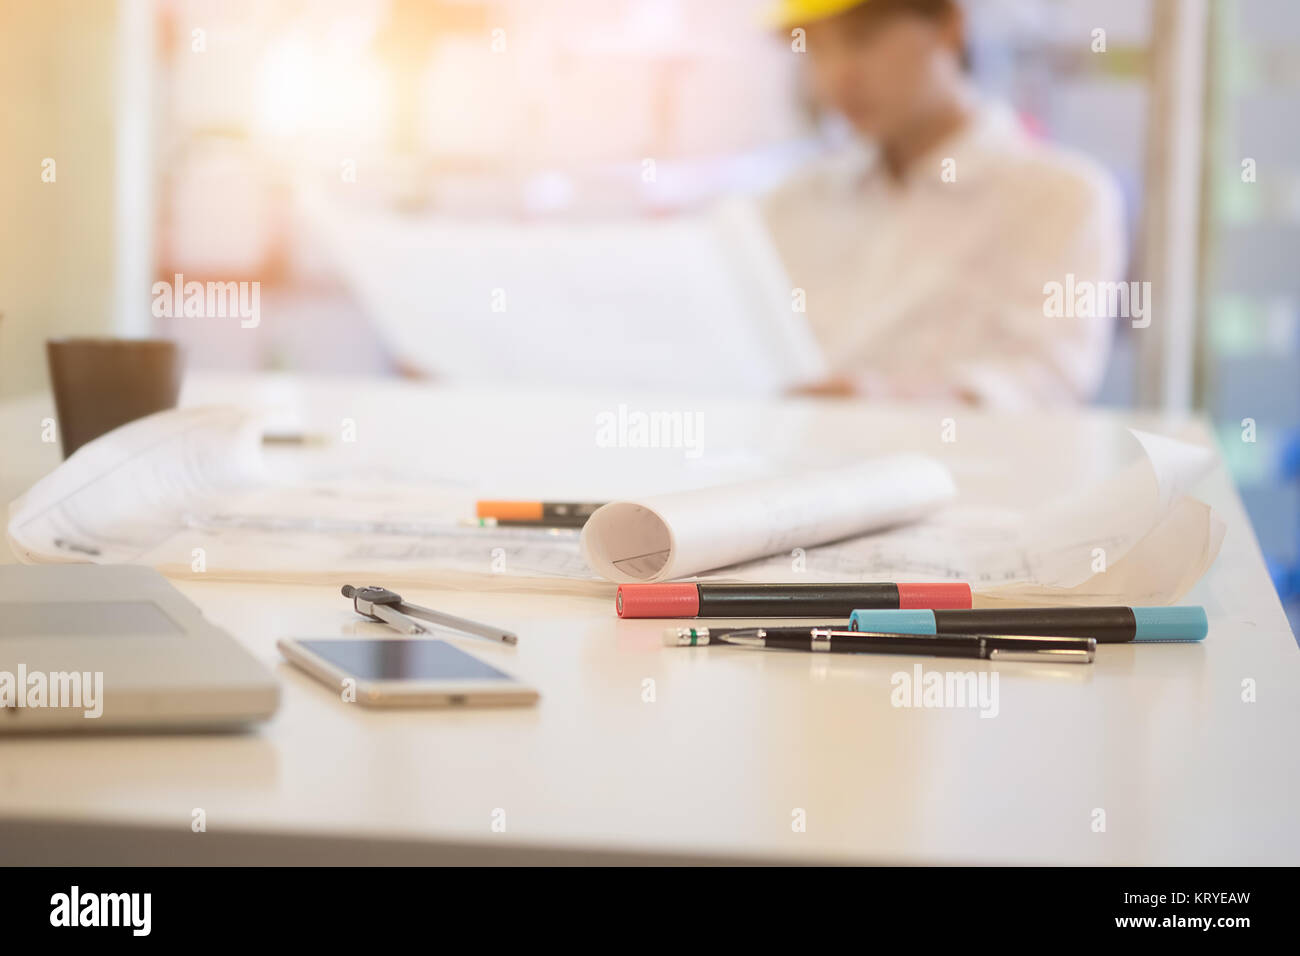 Architectural blueprints and objet of architect on working table. - Stock Image